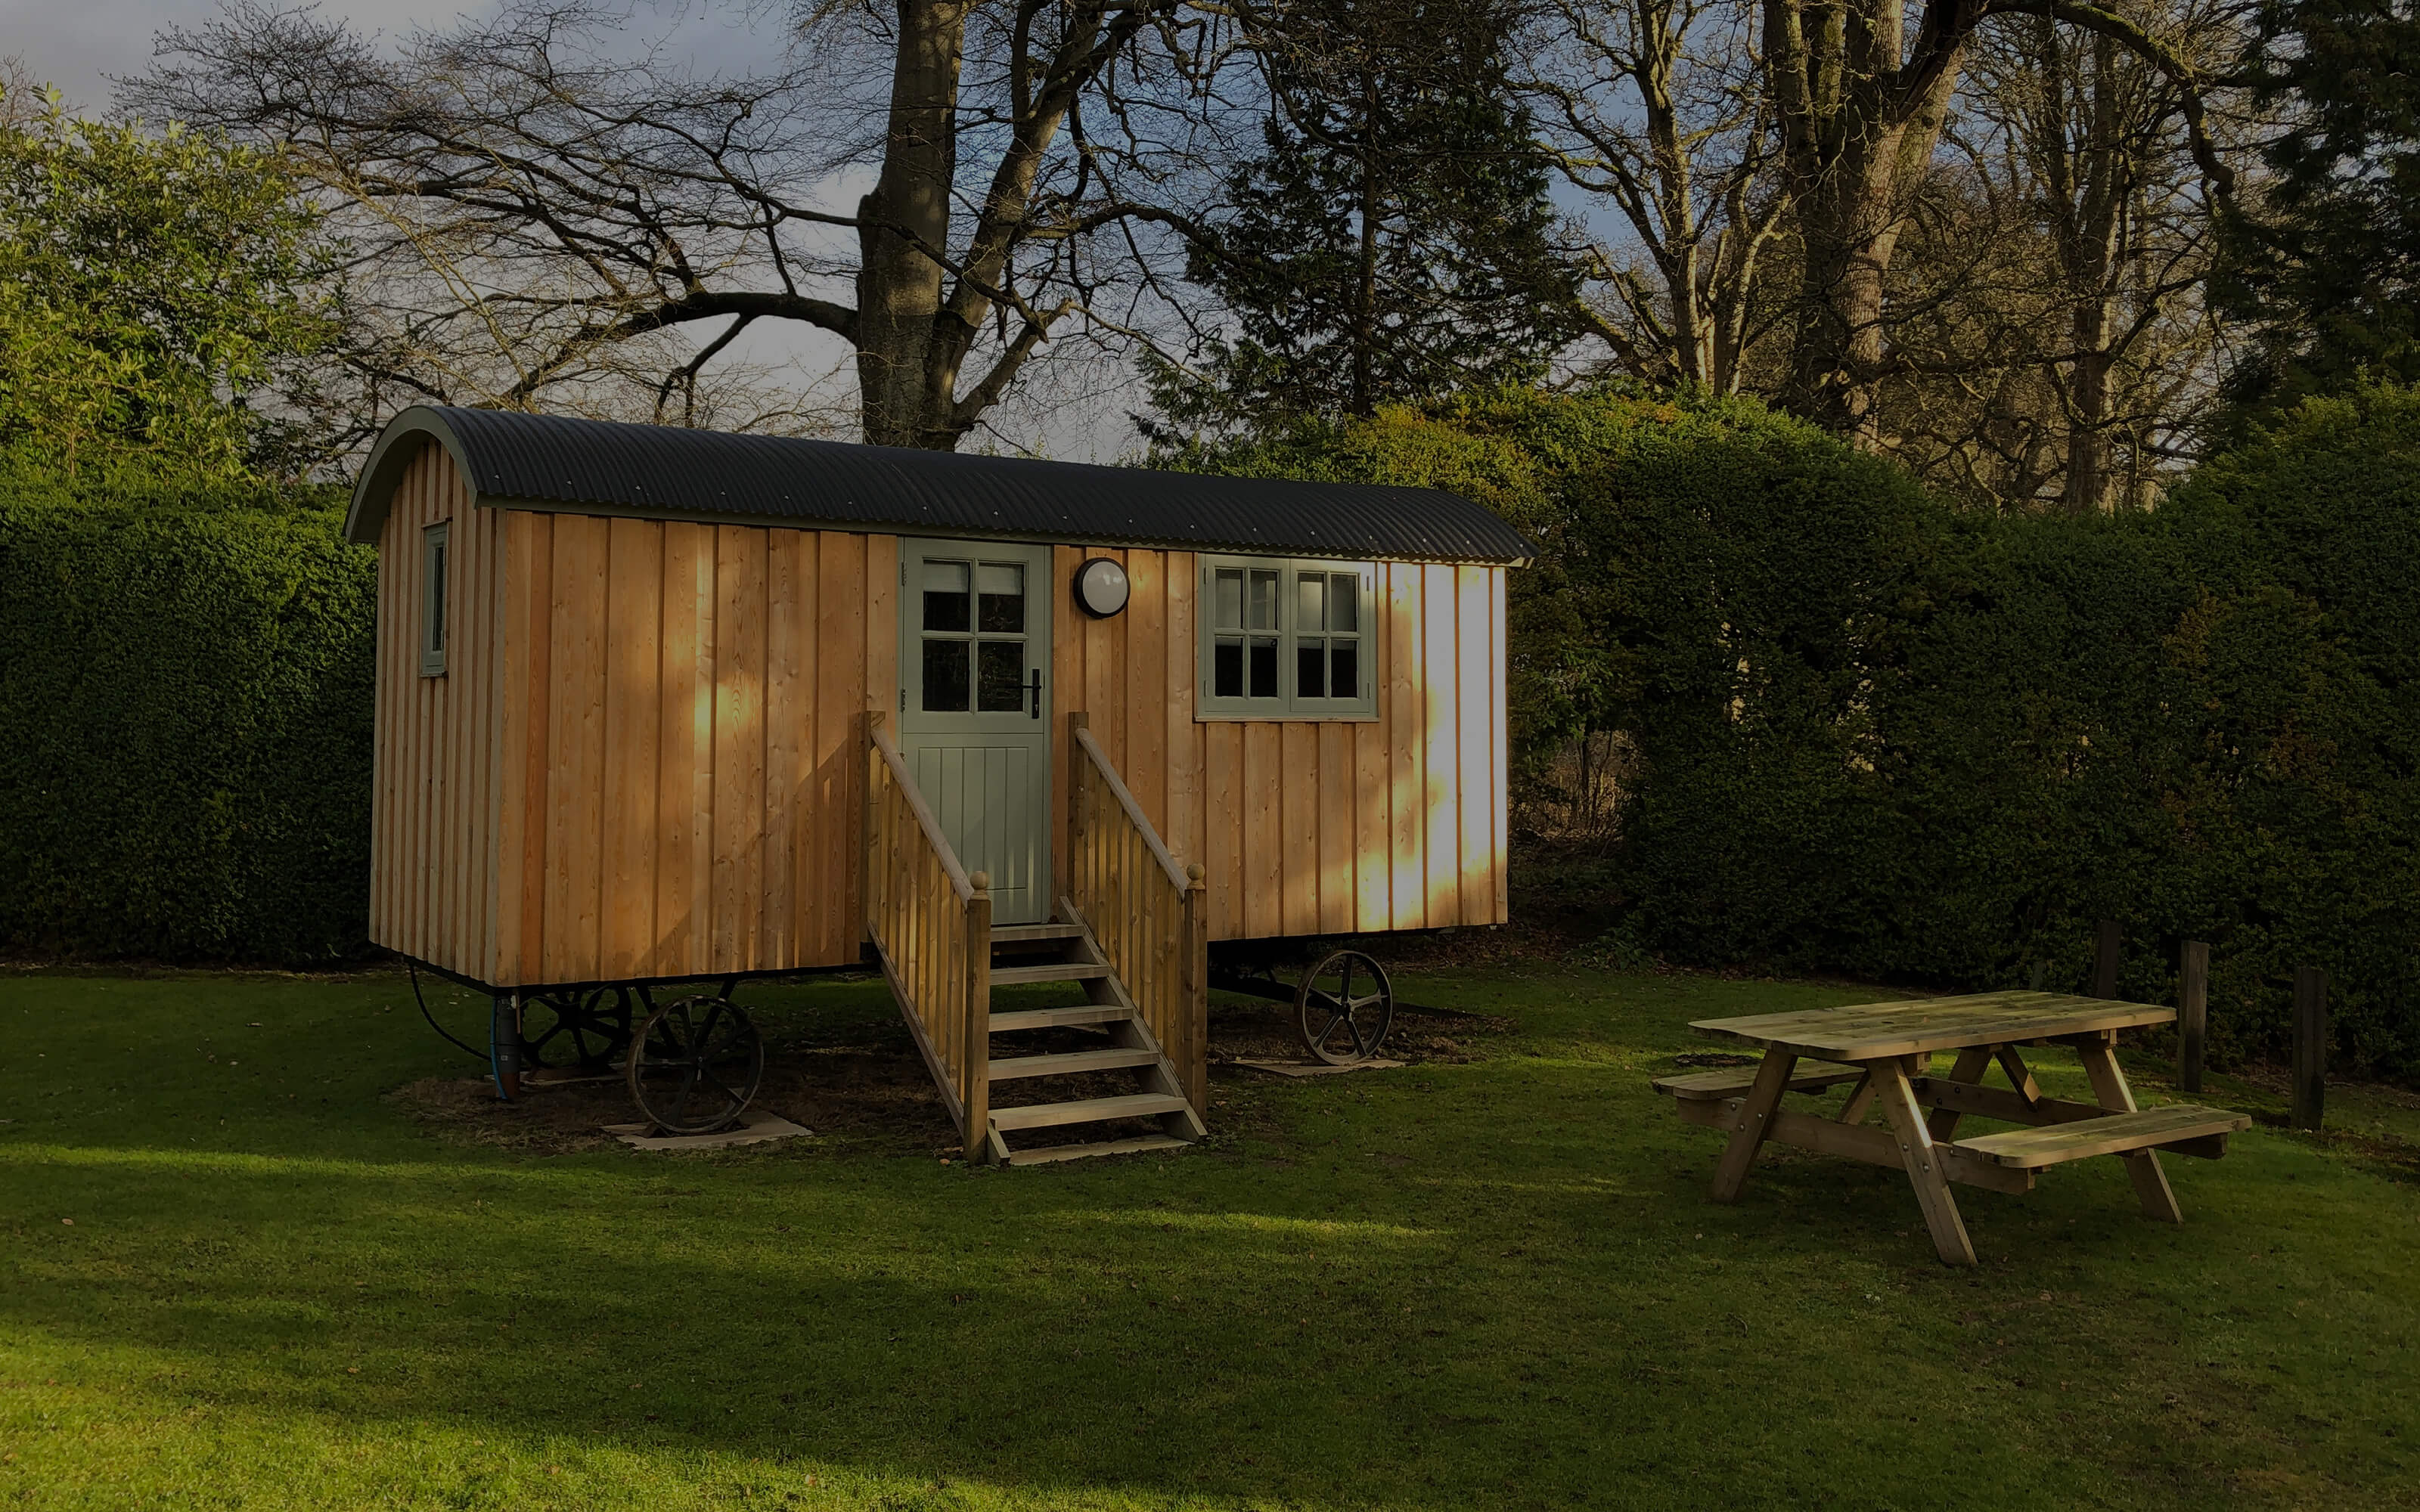 The outside of a newly built wooden shepherds hut.